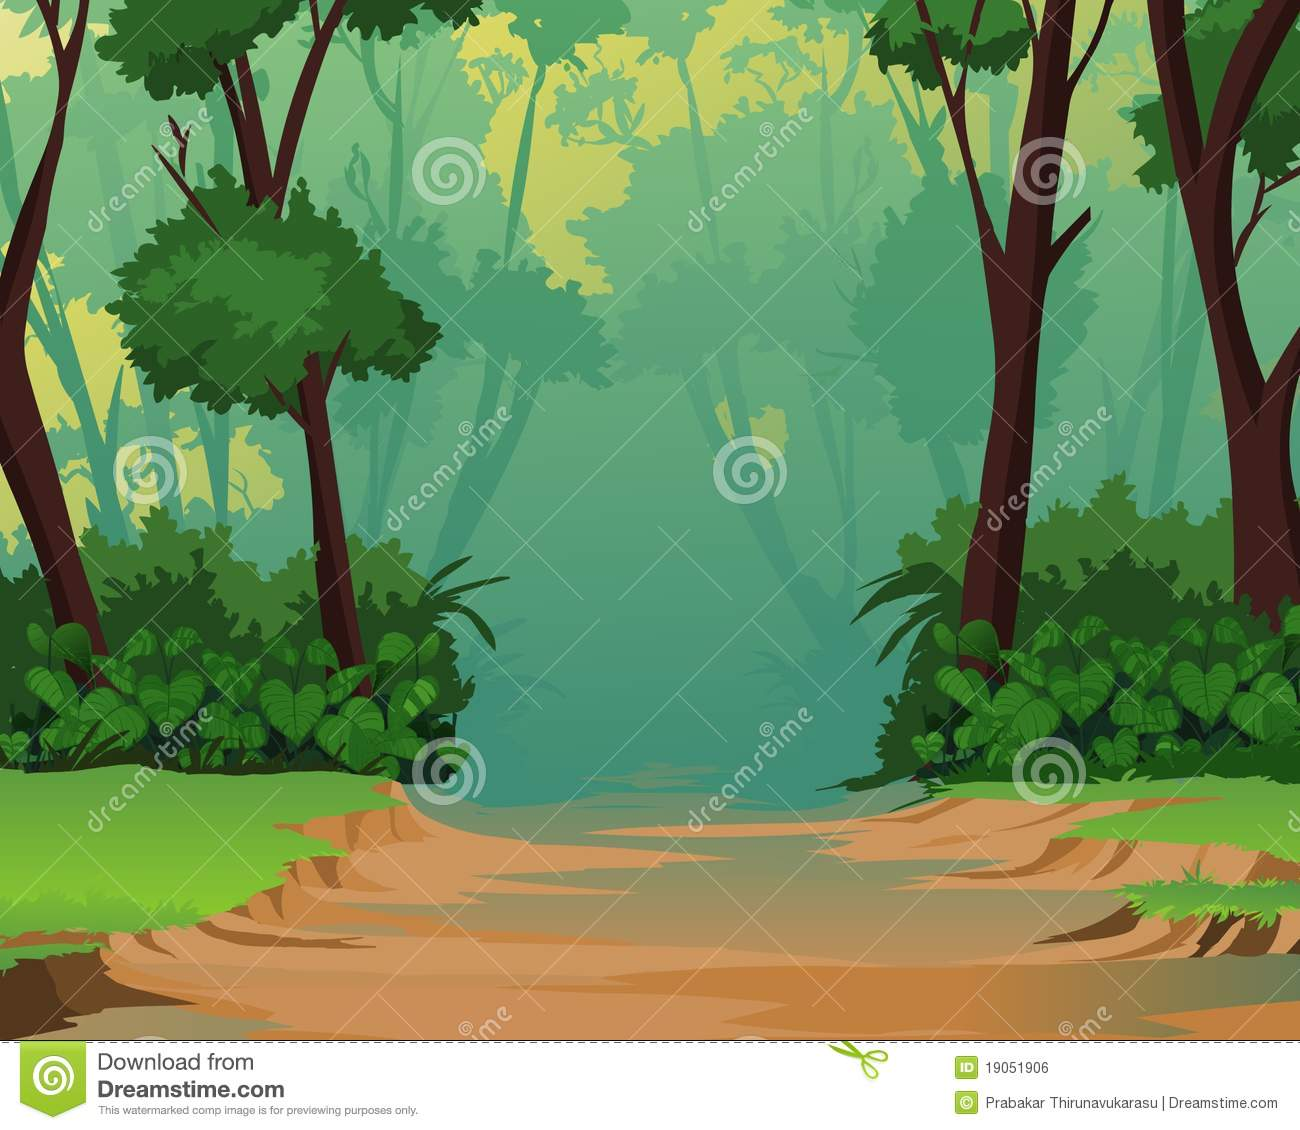 Scenery clipart jungle scenery #1